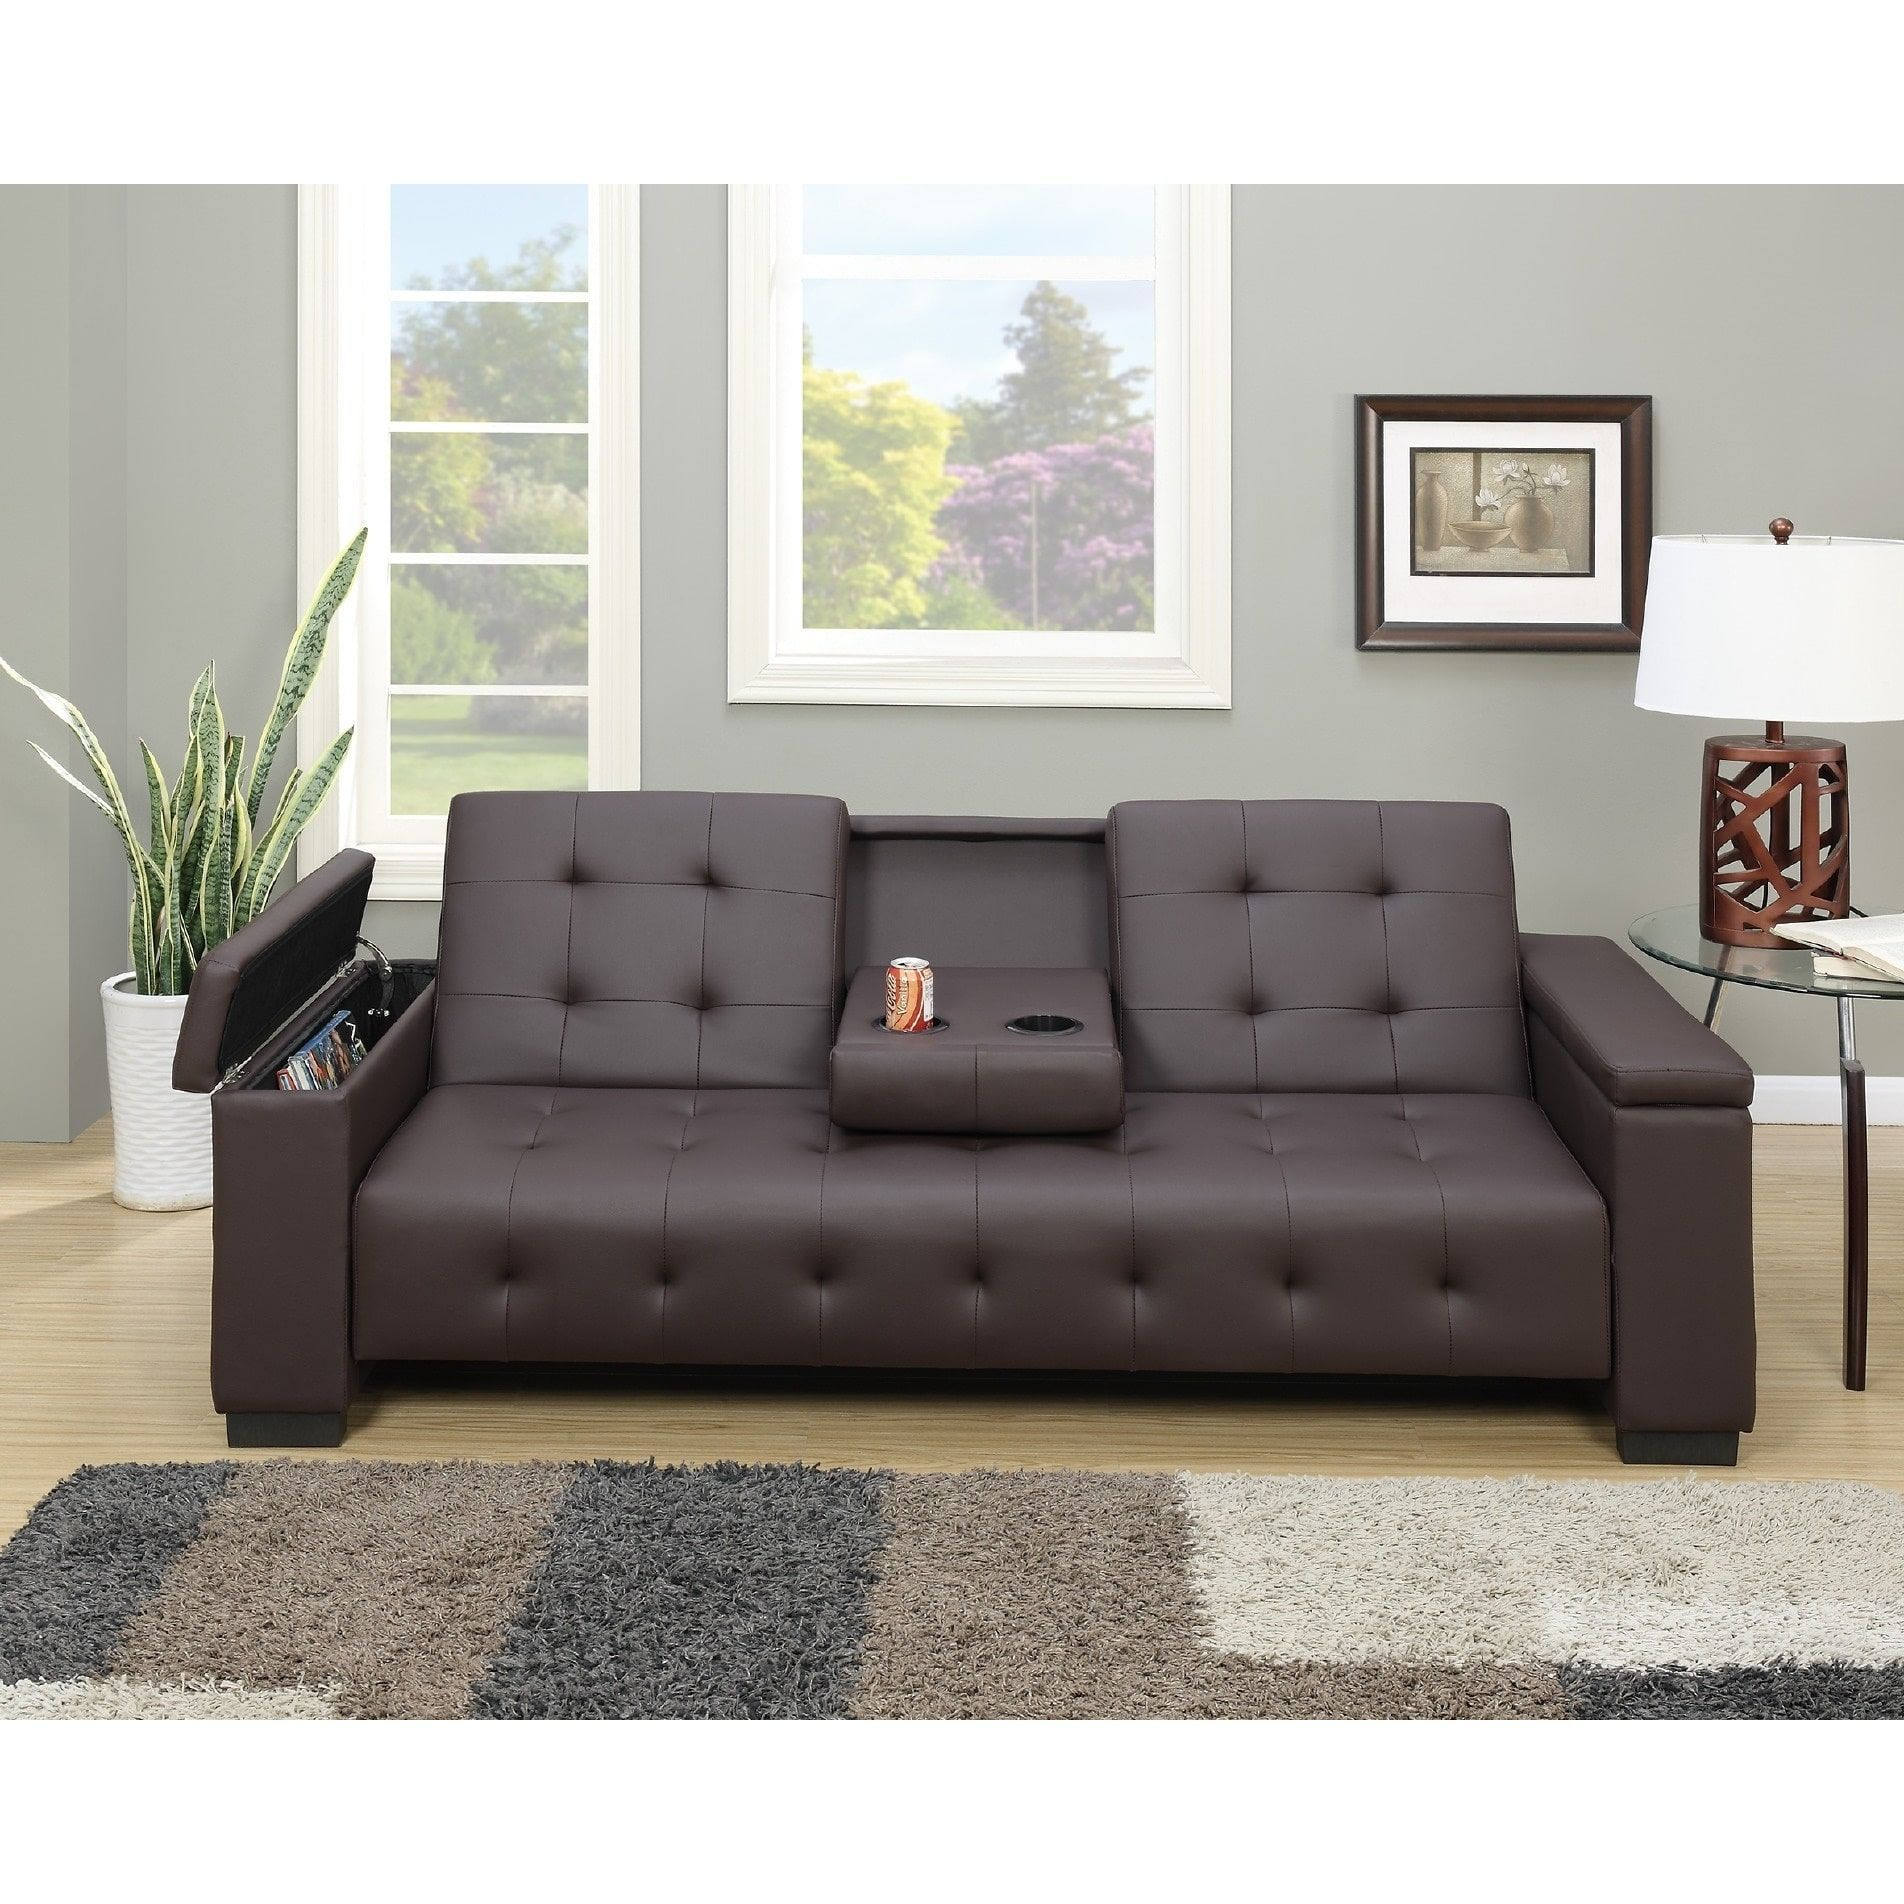 Sectional Sofas Cortez Adjustable Storage Sleeper Sofa